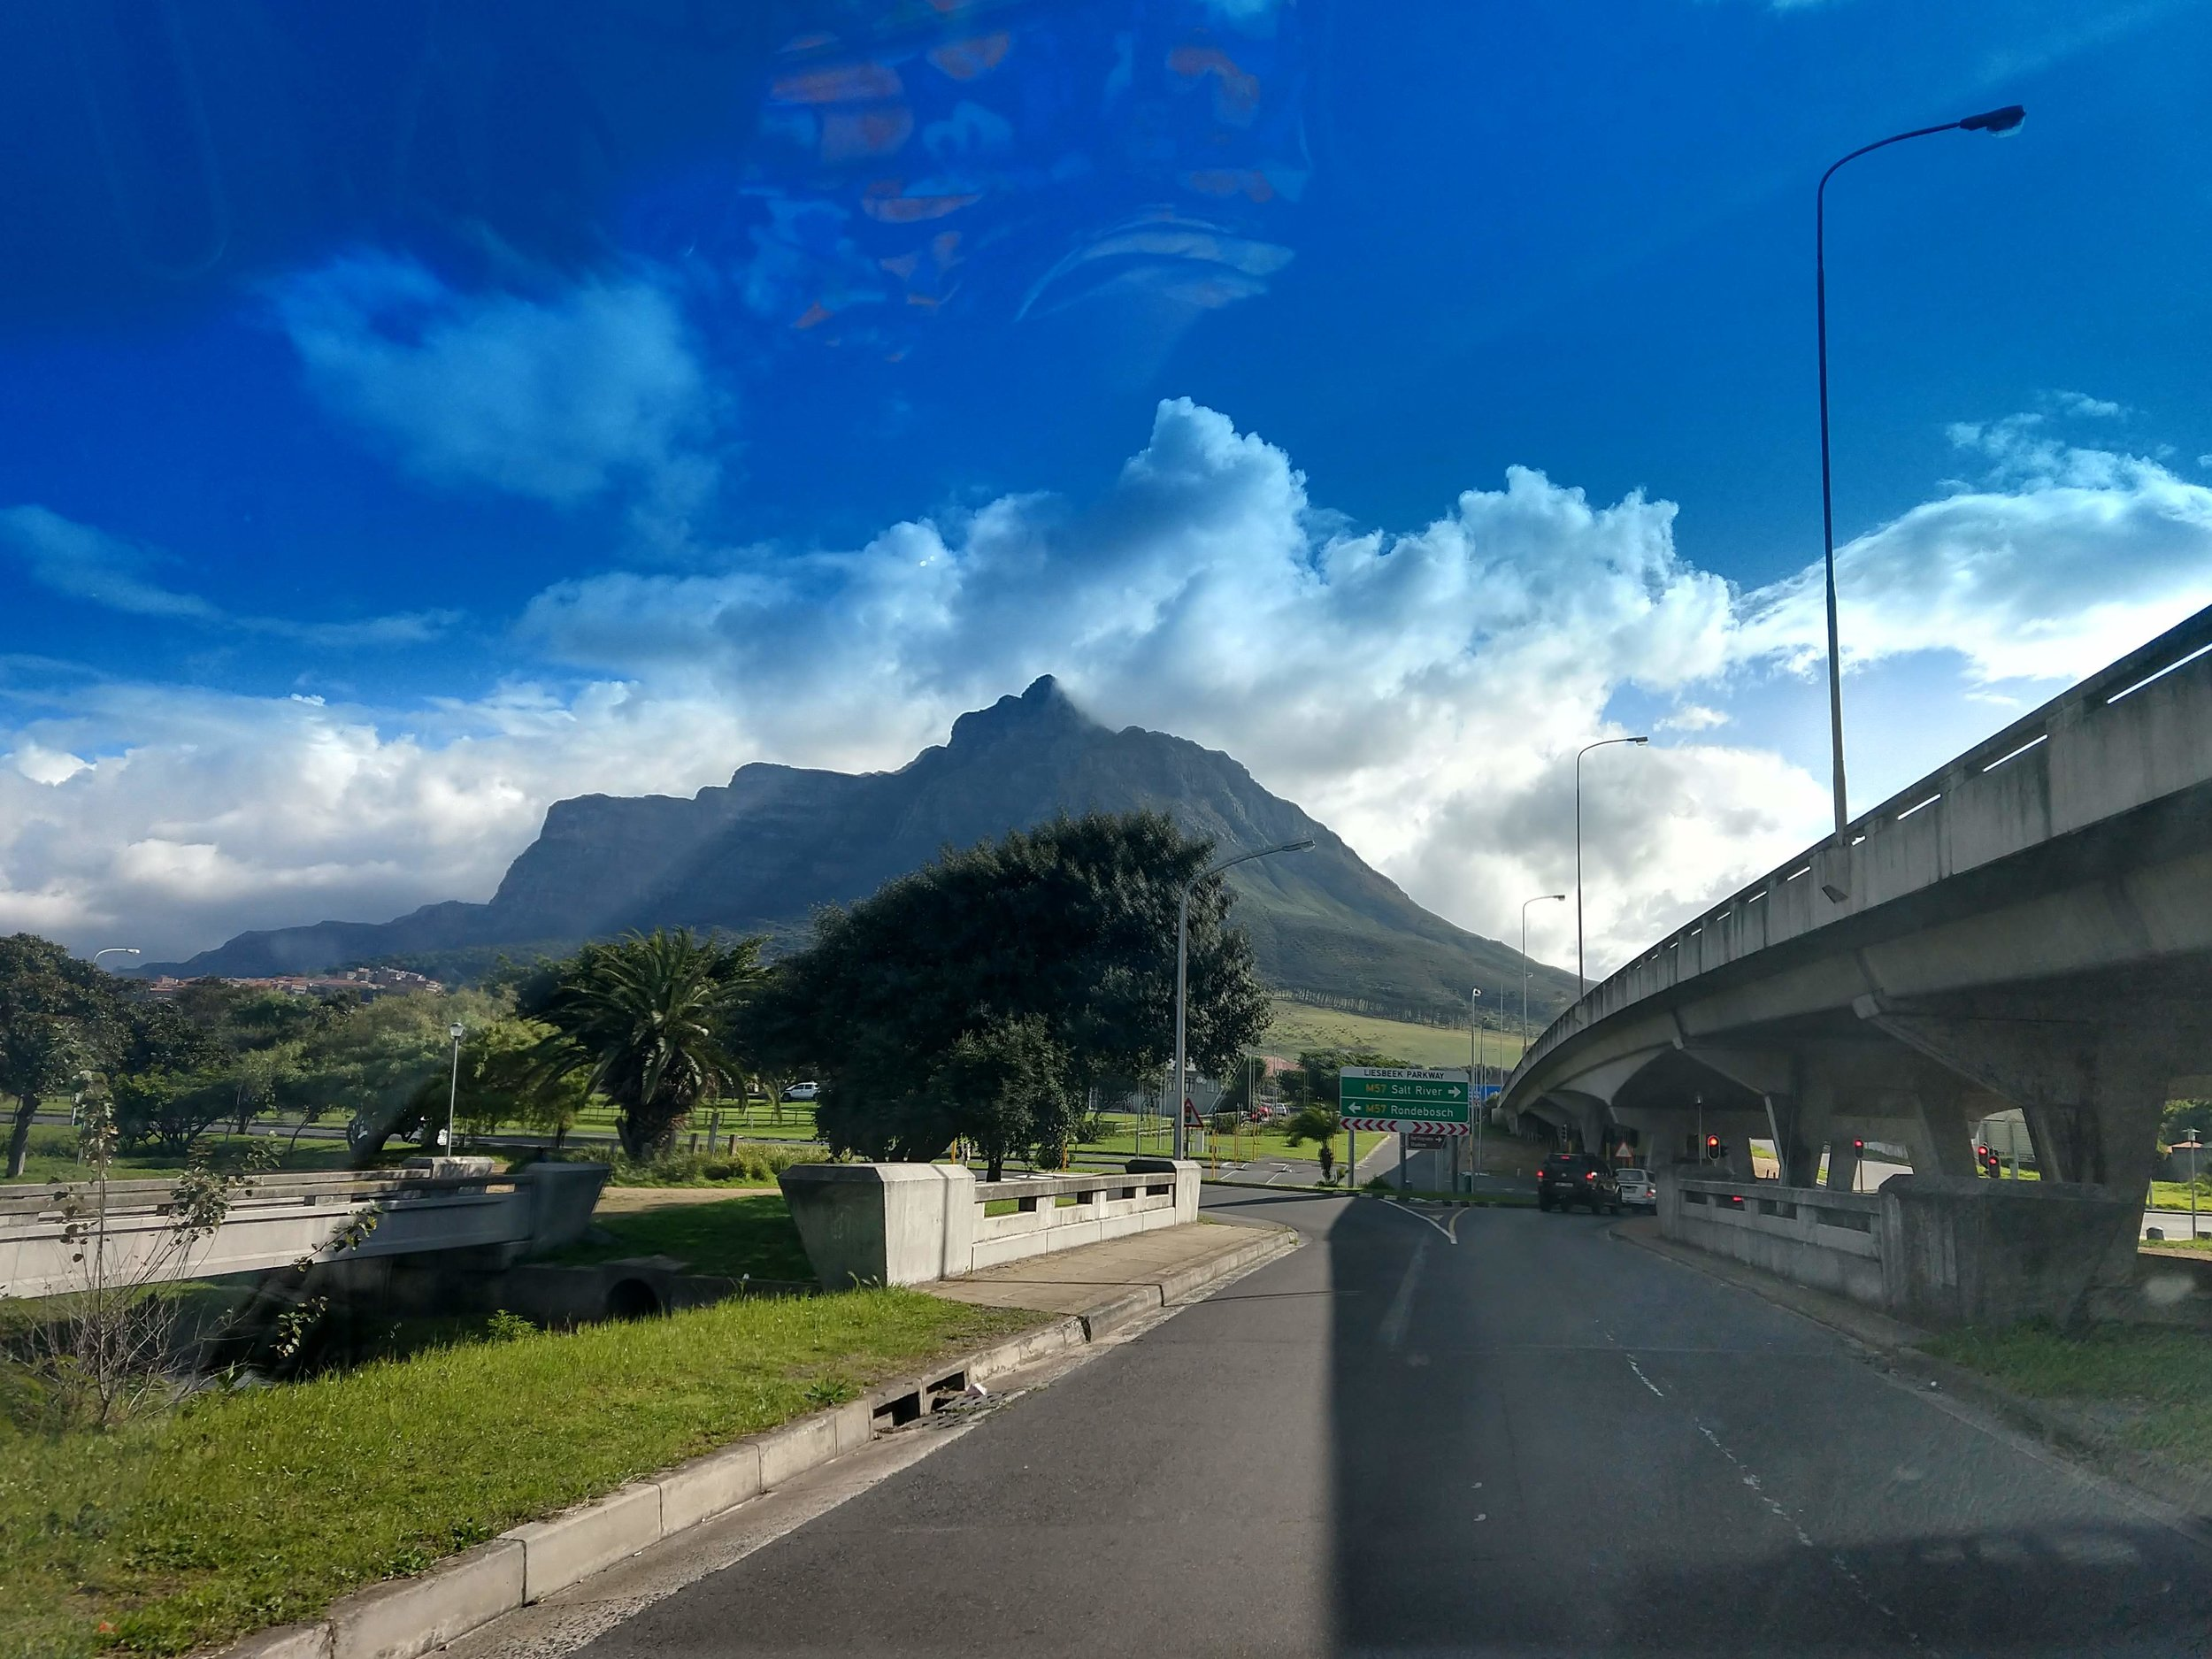 Cape Town's famously rugged mountains, seen from the street.